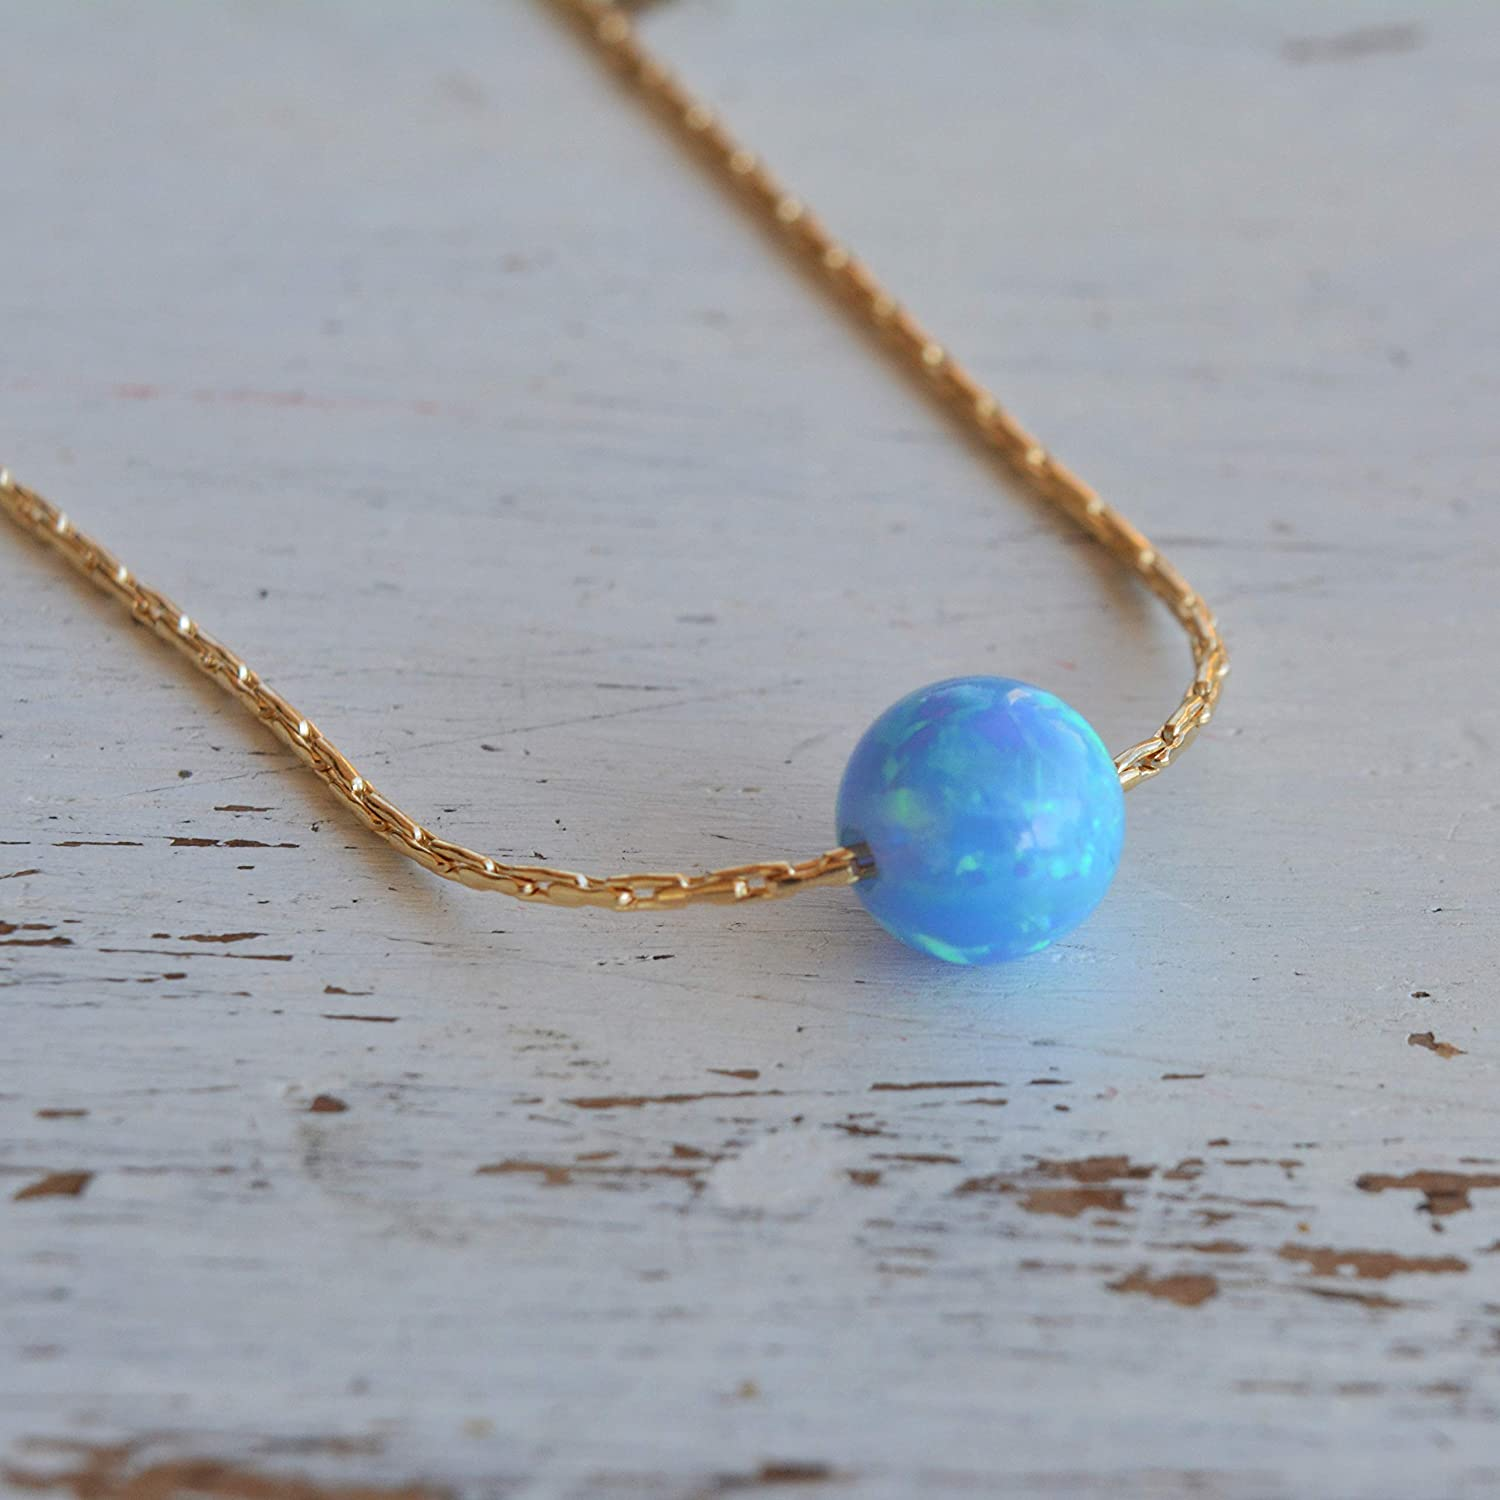 Blue Opal Ball Necklace 14k Gold Filled delicate Chain Opal Bead Necklace 16 length + 2 extension